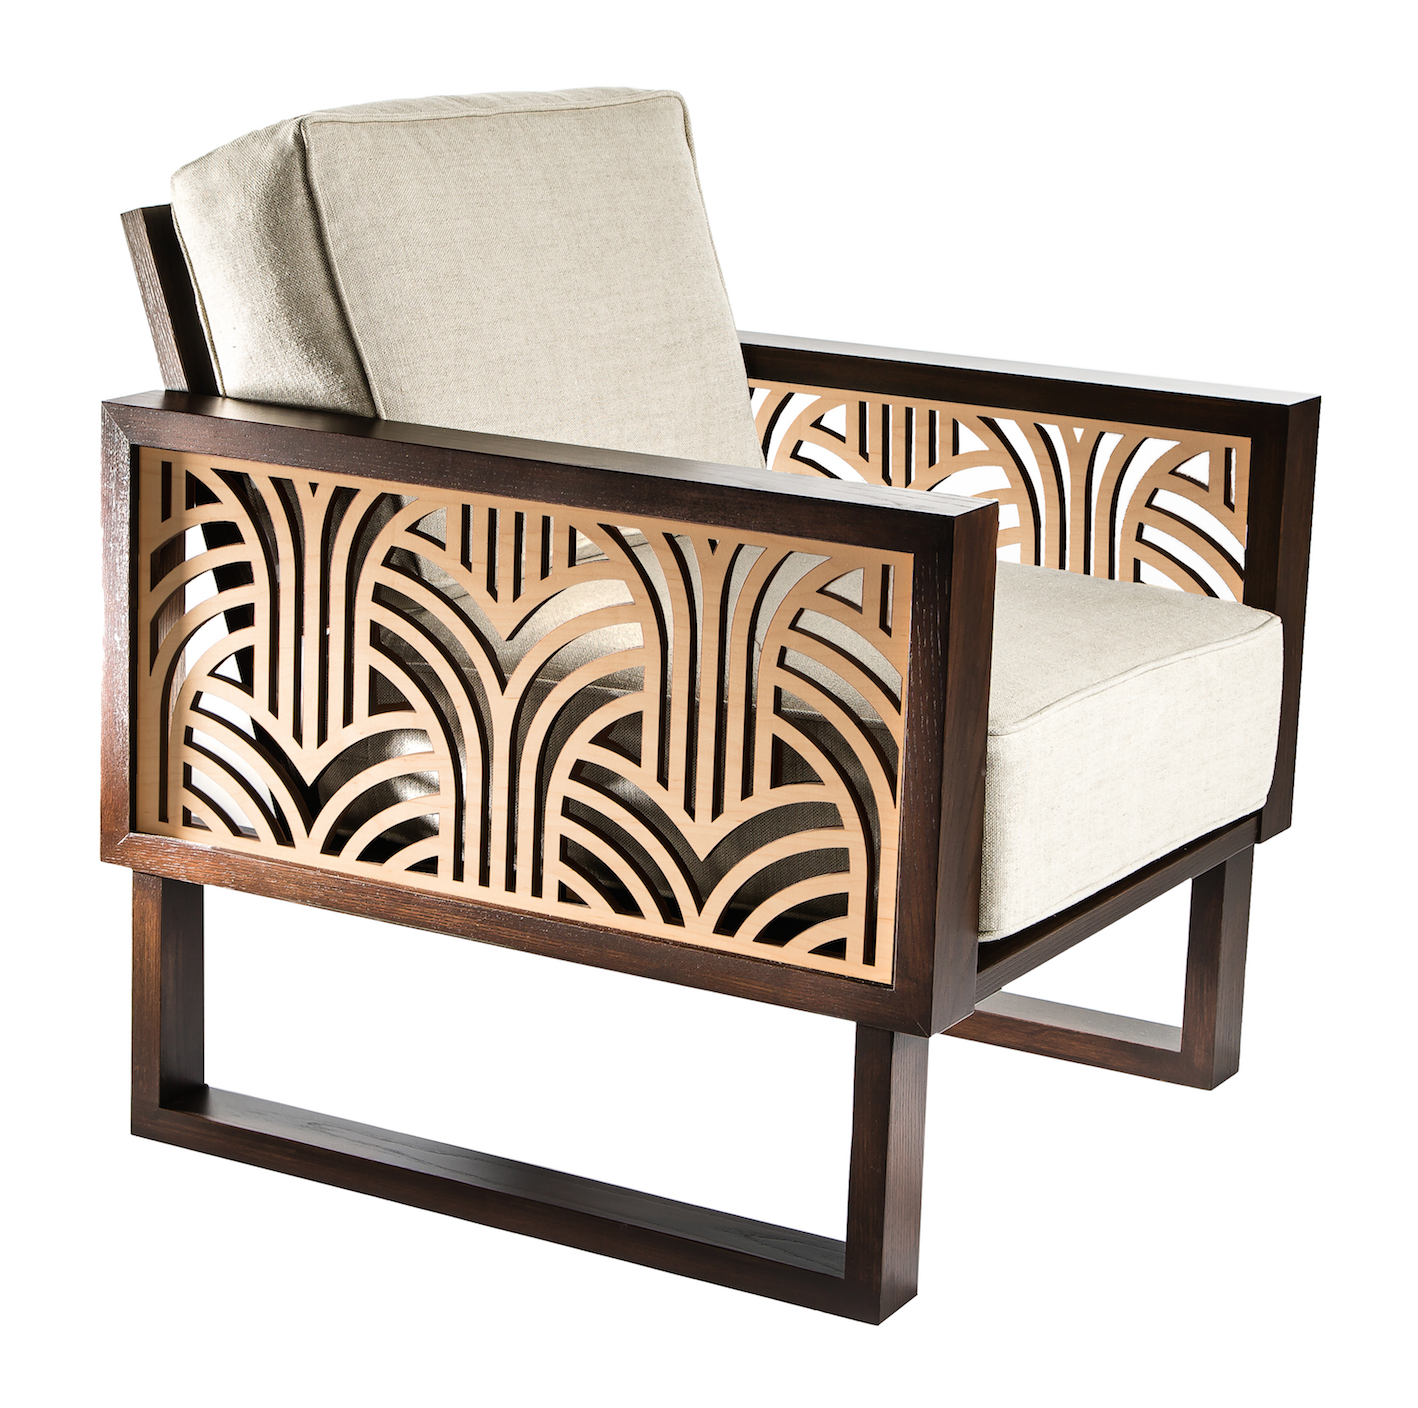 Twist Modern Art Deco Lounge Chair Elledecor